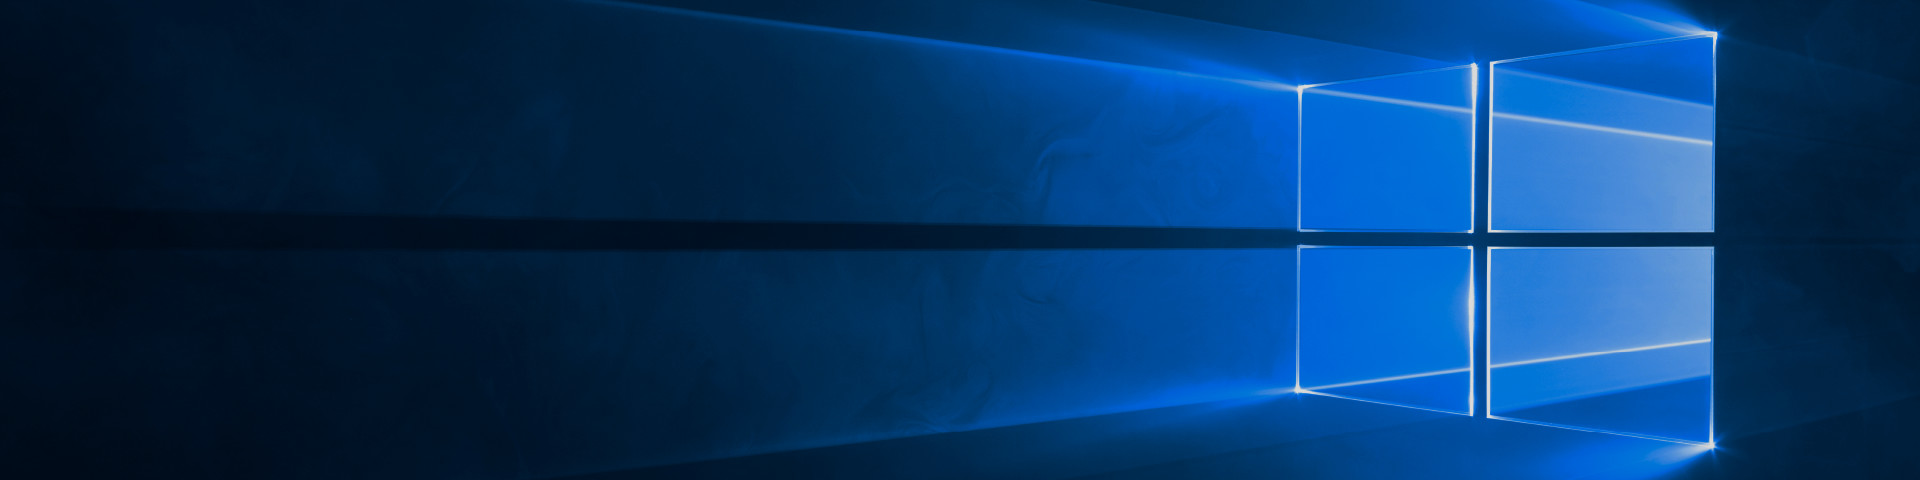 Windows 10 is here and you can download it for free.*